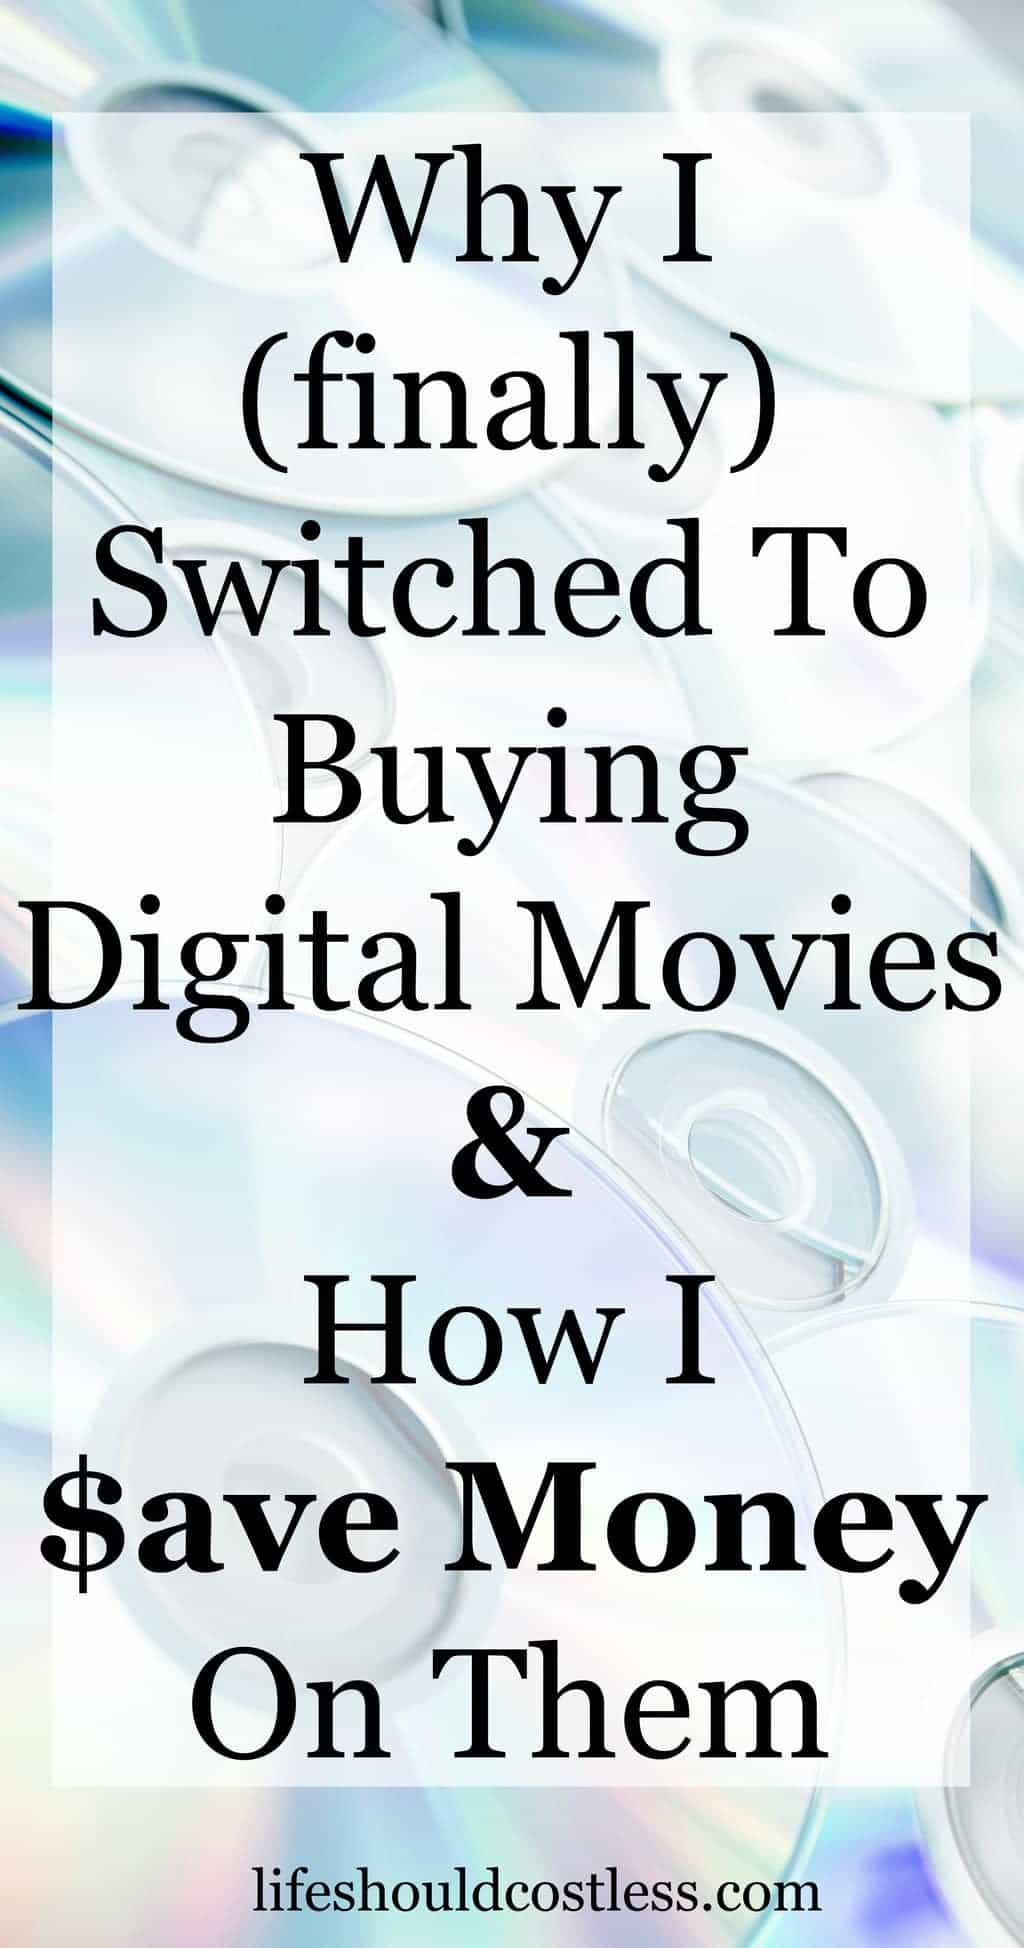 Why I finally switched to buying digital movies and how I save money on them. #amazontip #primetip {lifeshouldcostless.com}